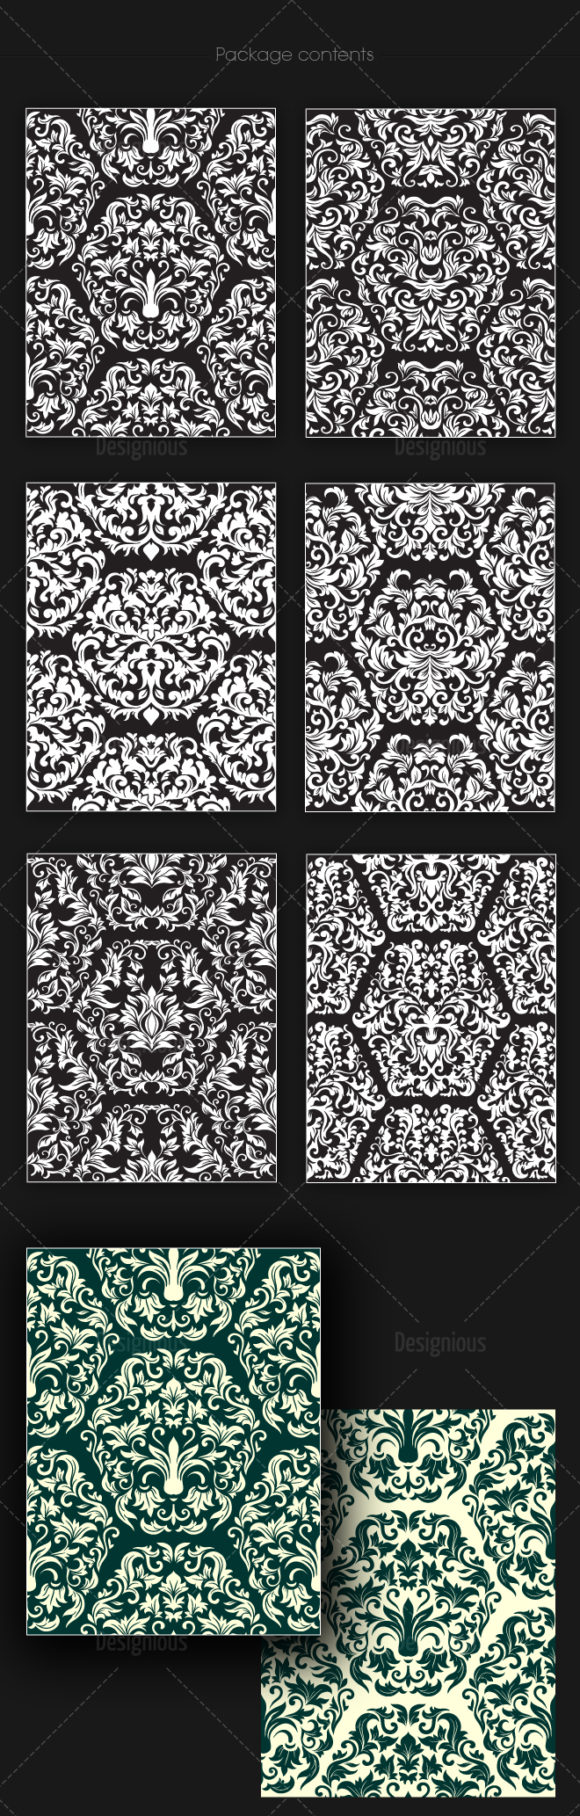 Seamless Patterns Vector Pack 151 products designious vector seamless 151 large